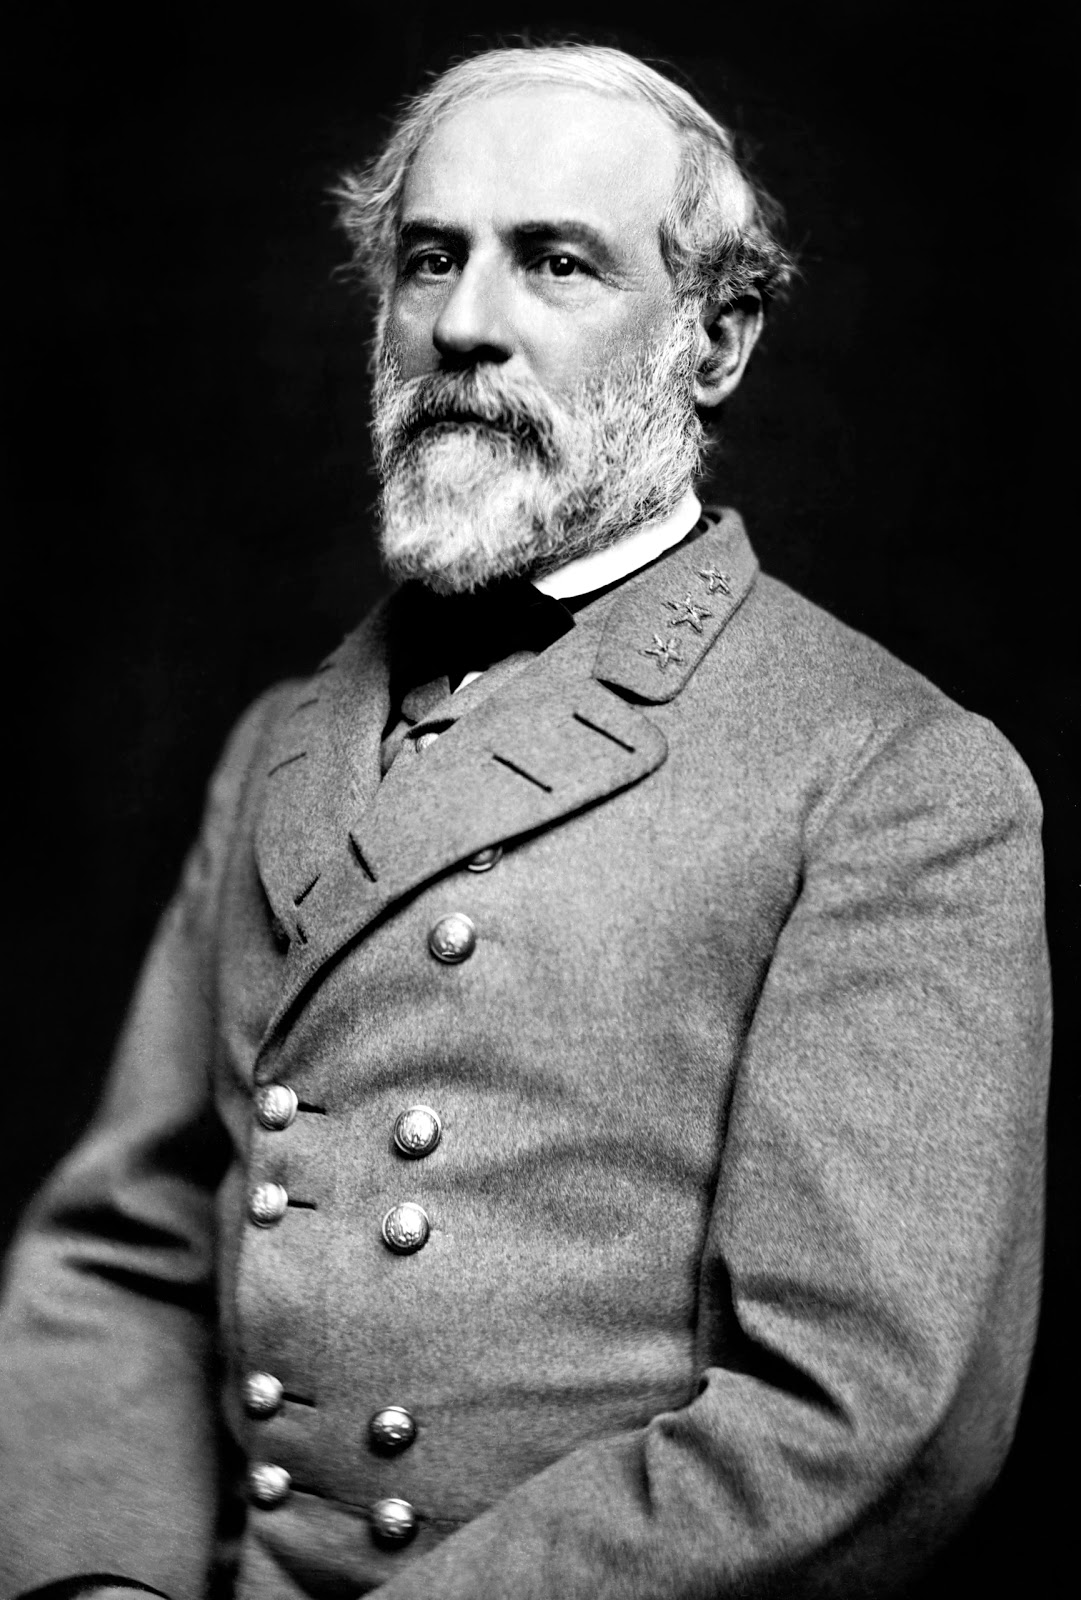 Goblinbooks: A Message To The NRA From Robert E. Lee